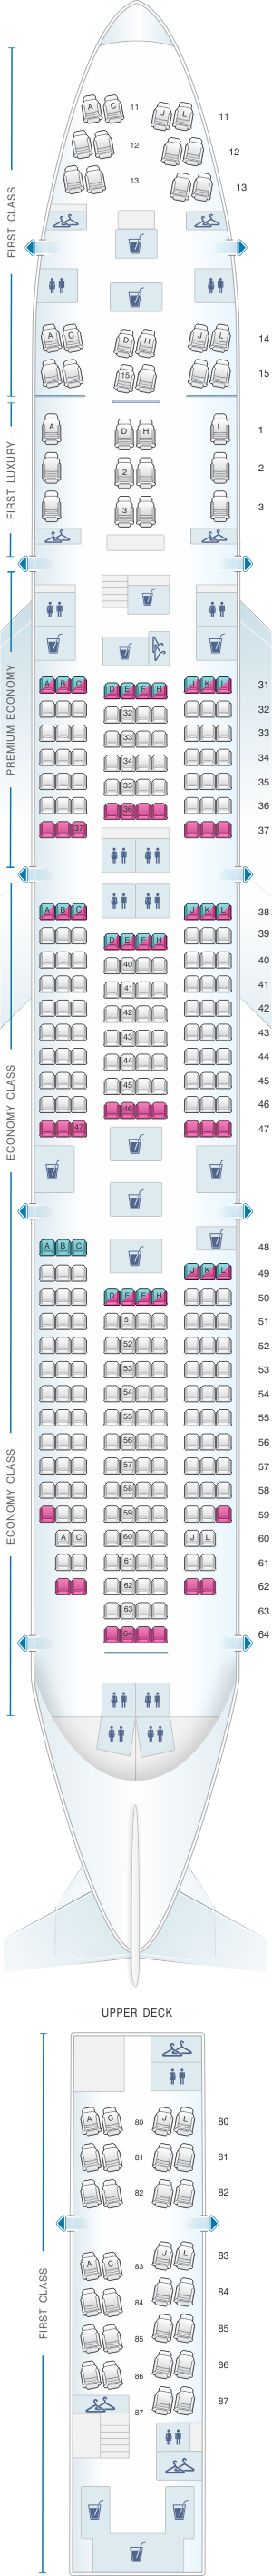 Seat map for Air China Boeing B747 8